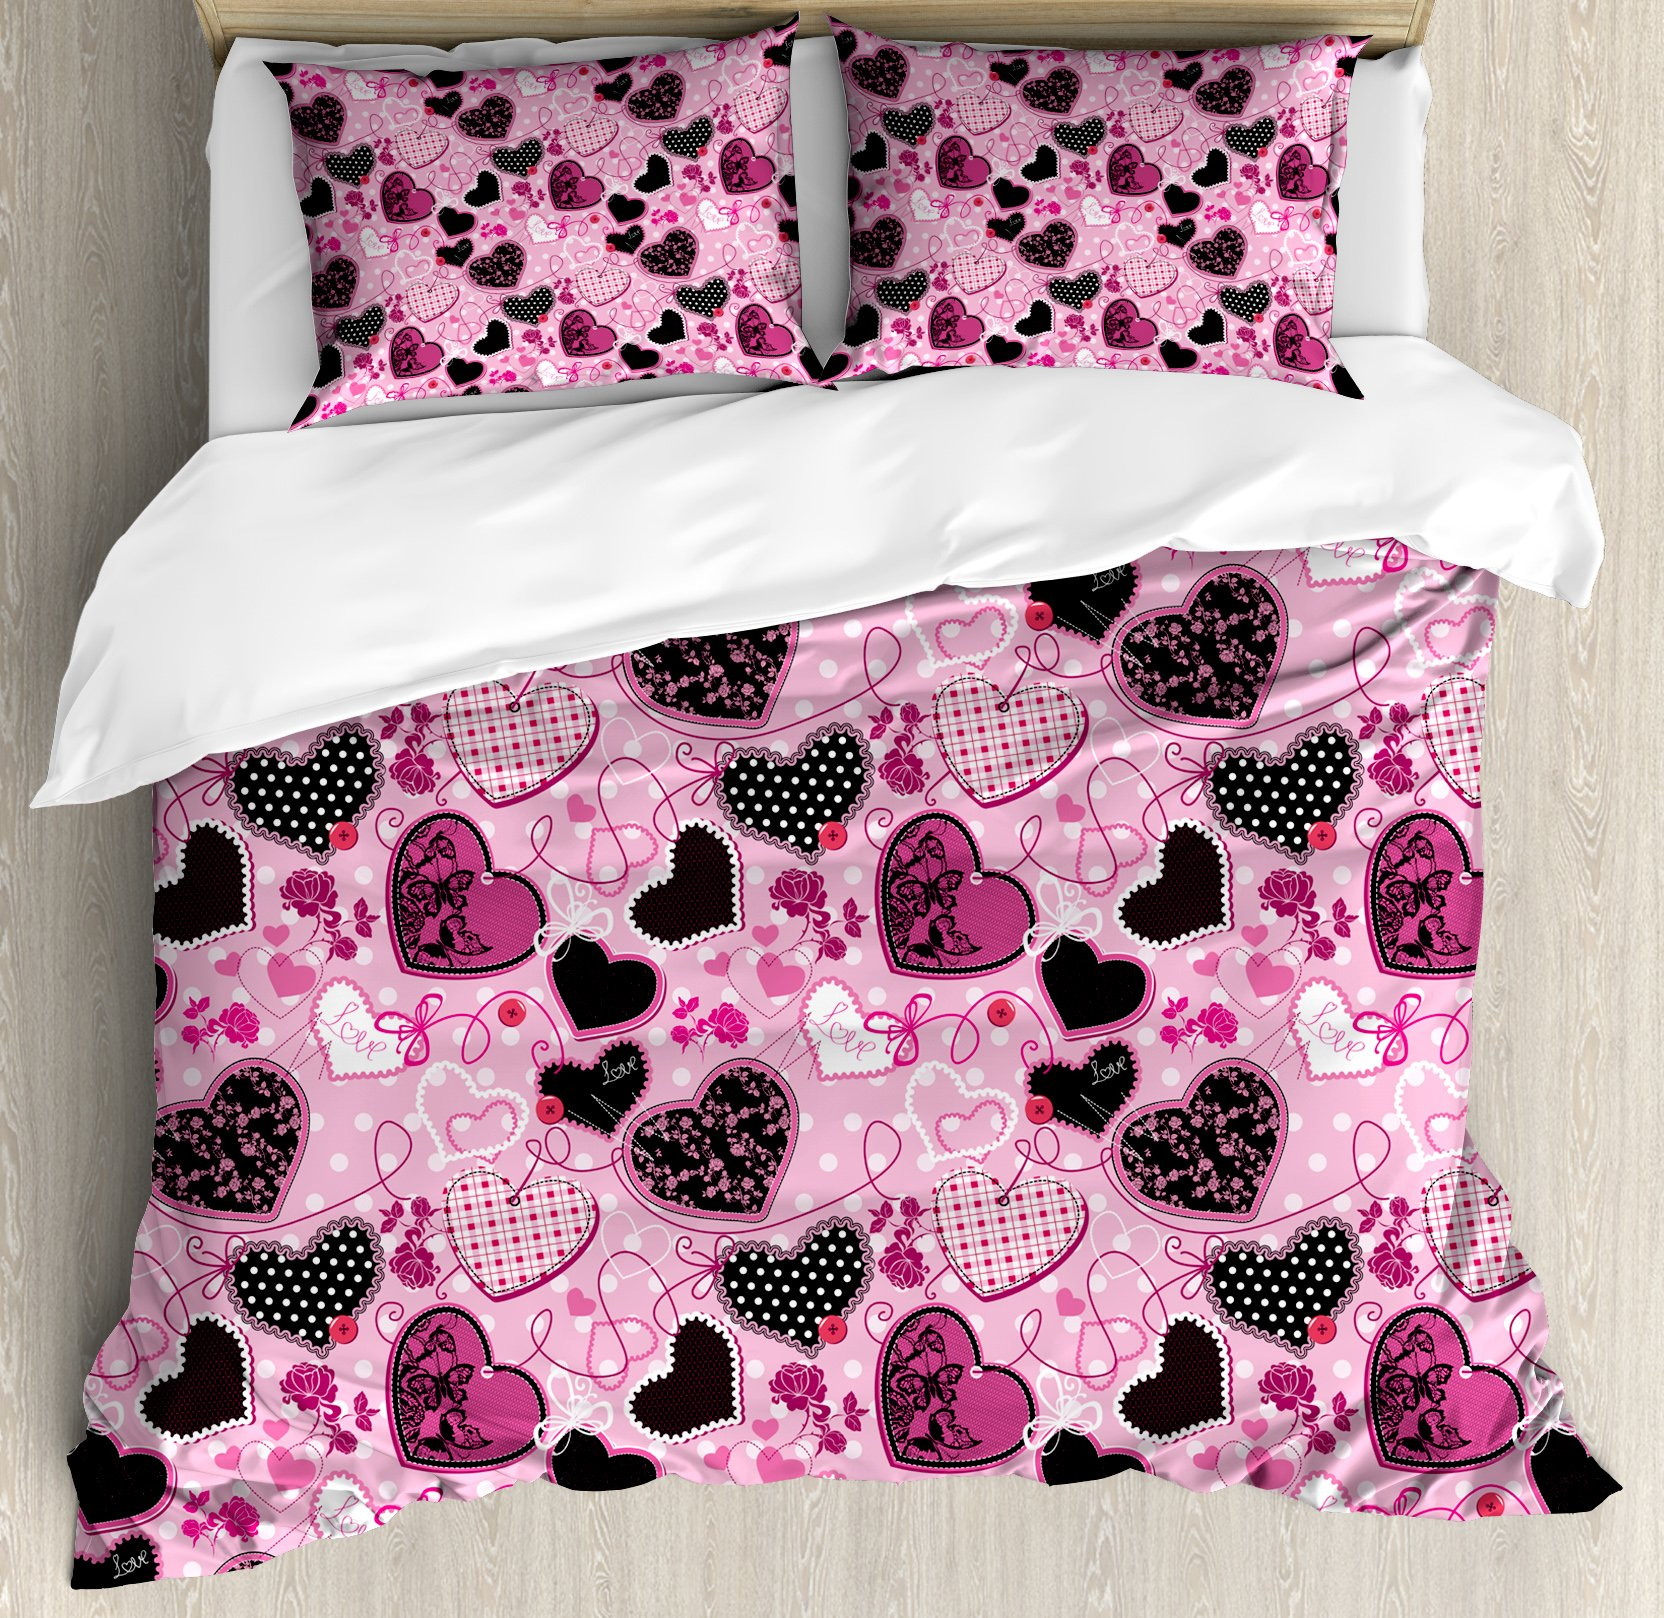 Hearts Queen Size Duvet Cover Set by Lunarable, Sewing Themed Love Symbols with Polka Dots Valentine's Day Inspired Image, Decorative 3 Piece Bedding Set with 2 Pillow Shams, Pink Black White